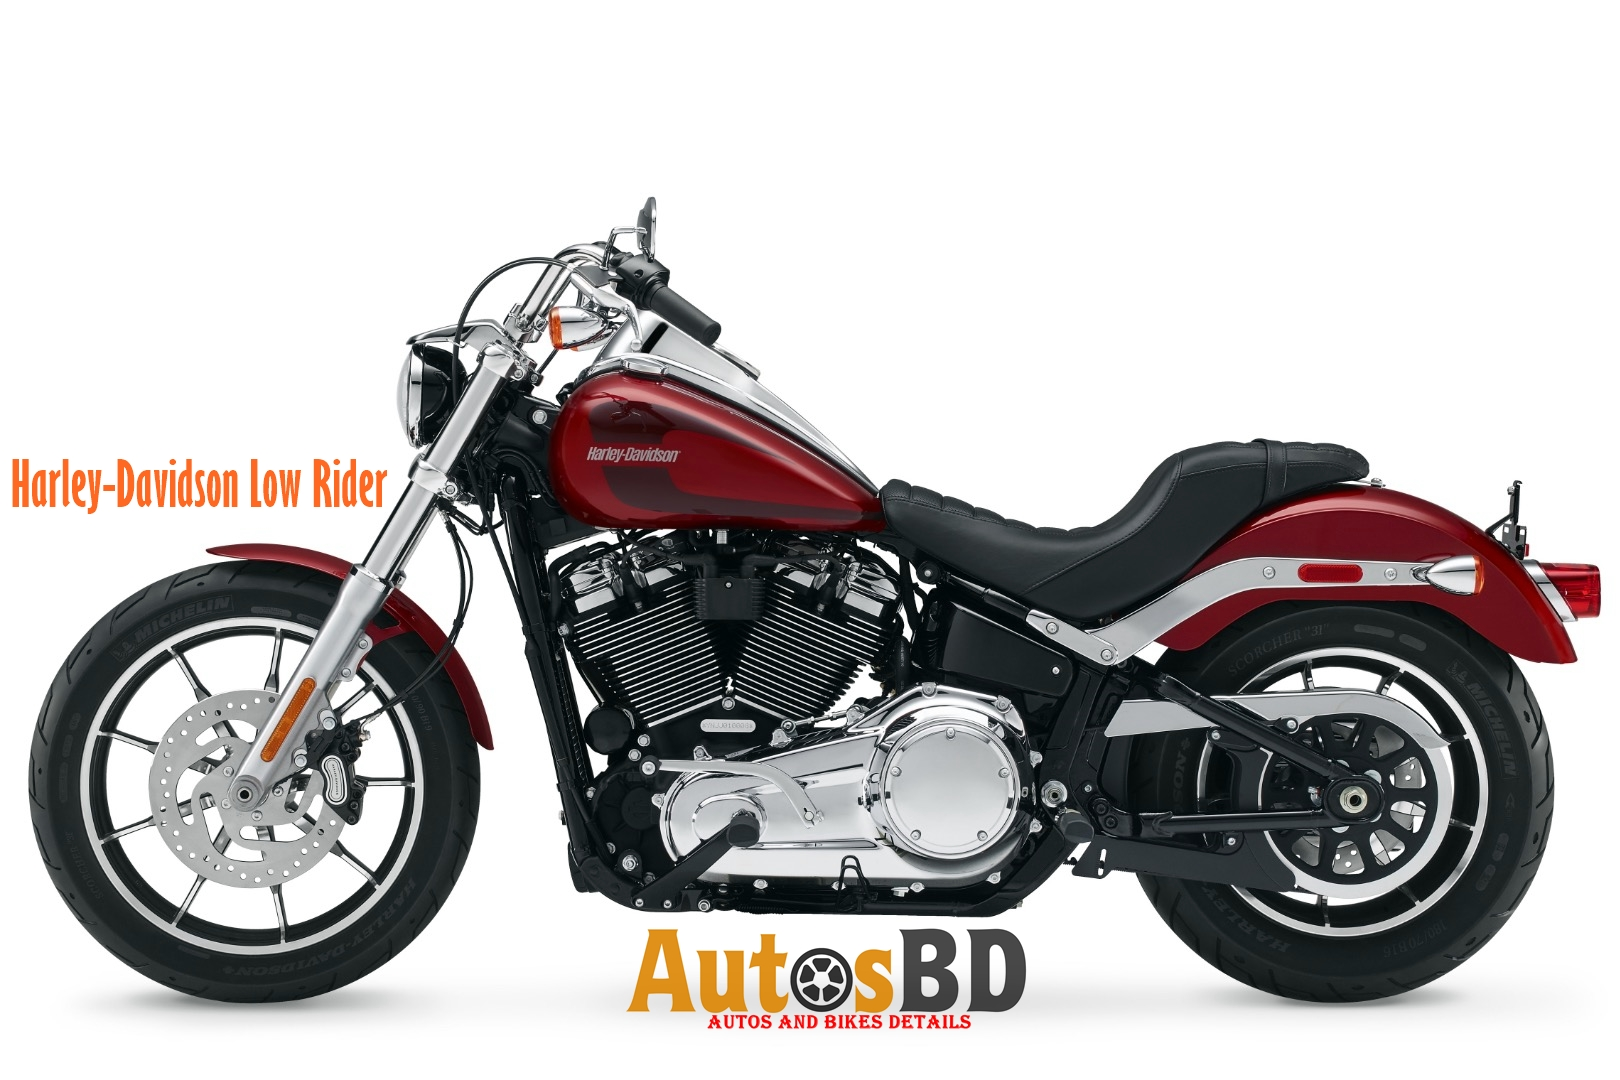 Harley-Davidson Low Rider Price in India